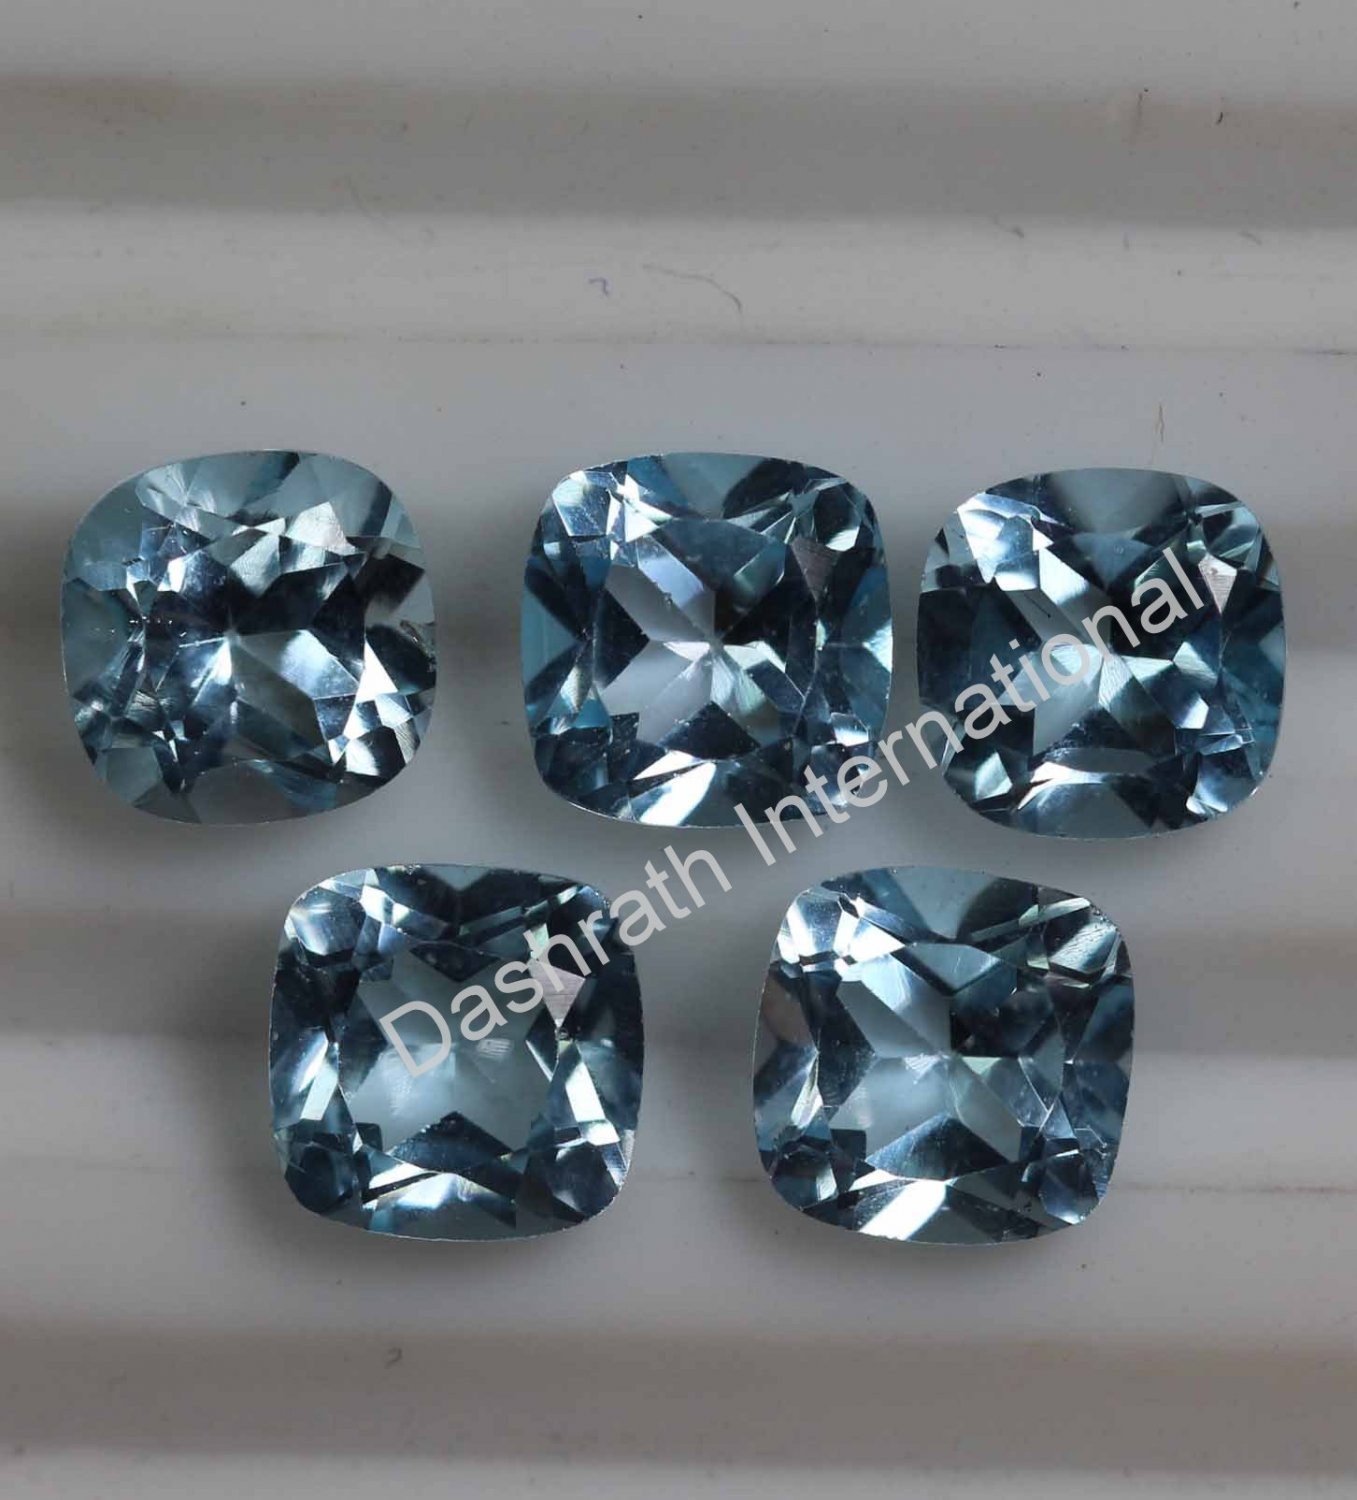 4mm Natural Sky Blue Topaz Faceted Cut Cushion 5 Pieces Lot  Top Quality Loose Gemstone